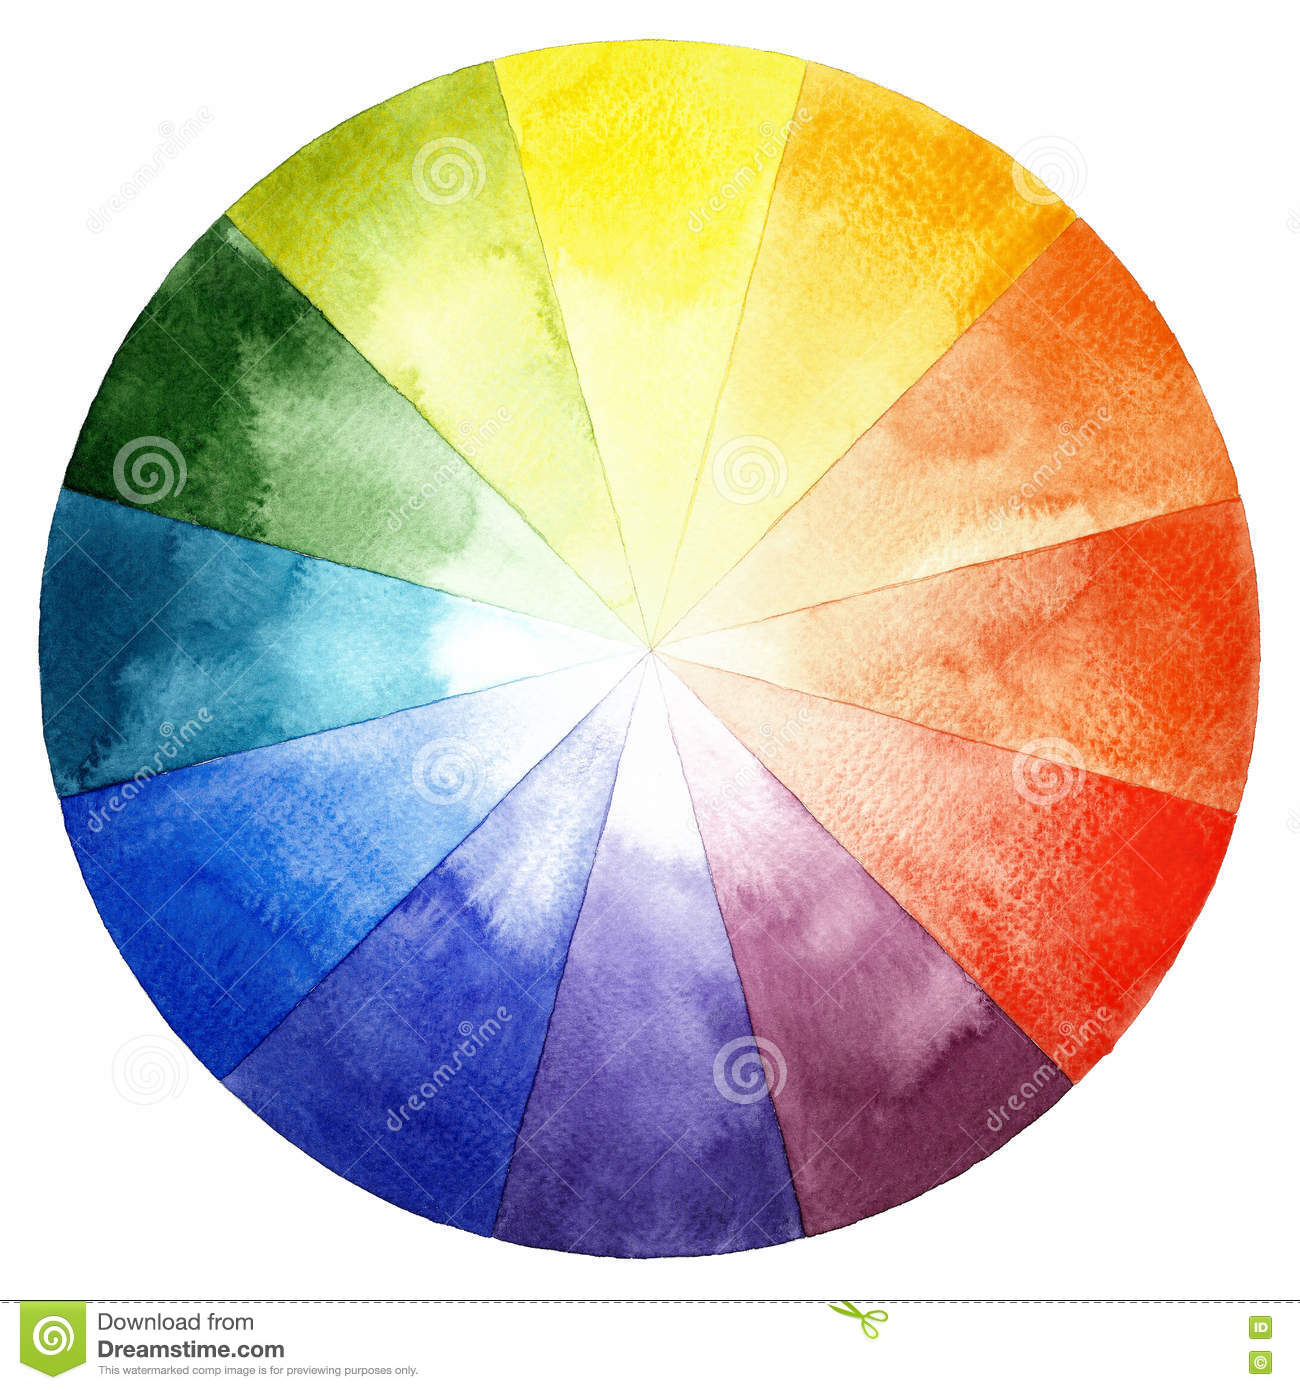 Watercolor Color Wheel Primary Secondary And Tertiary Colors